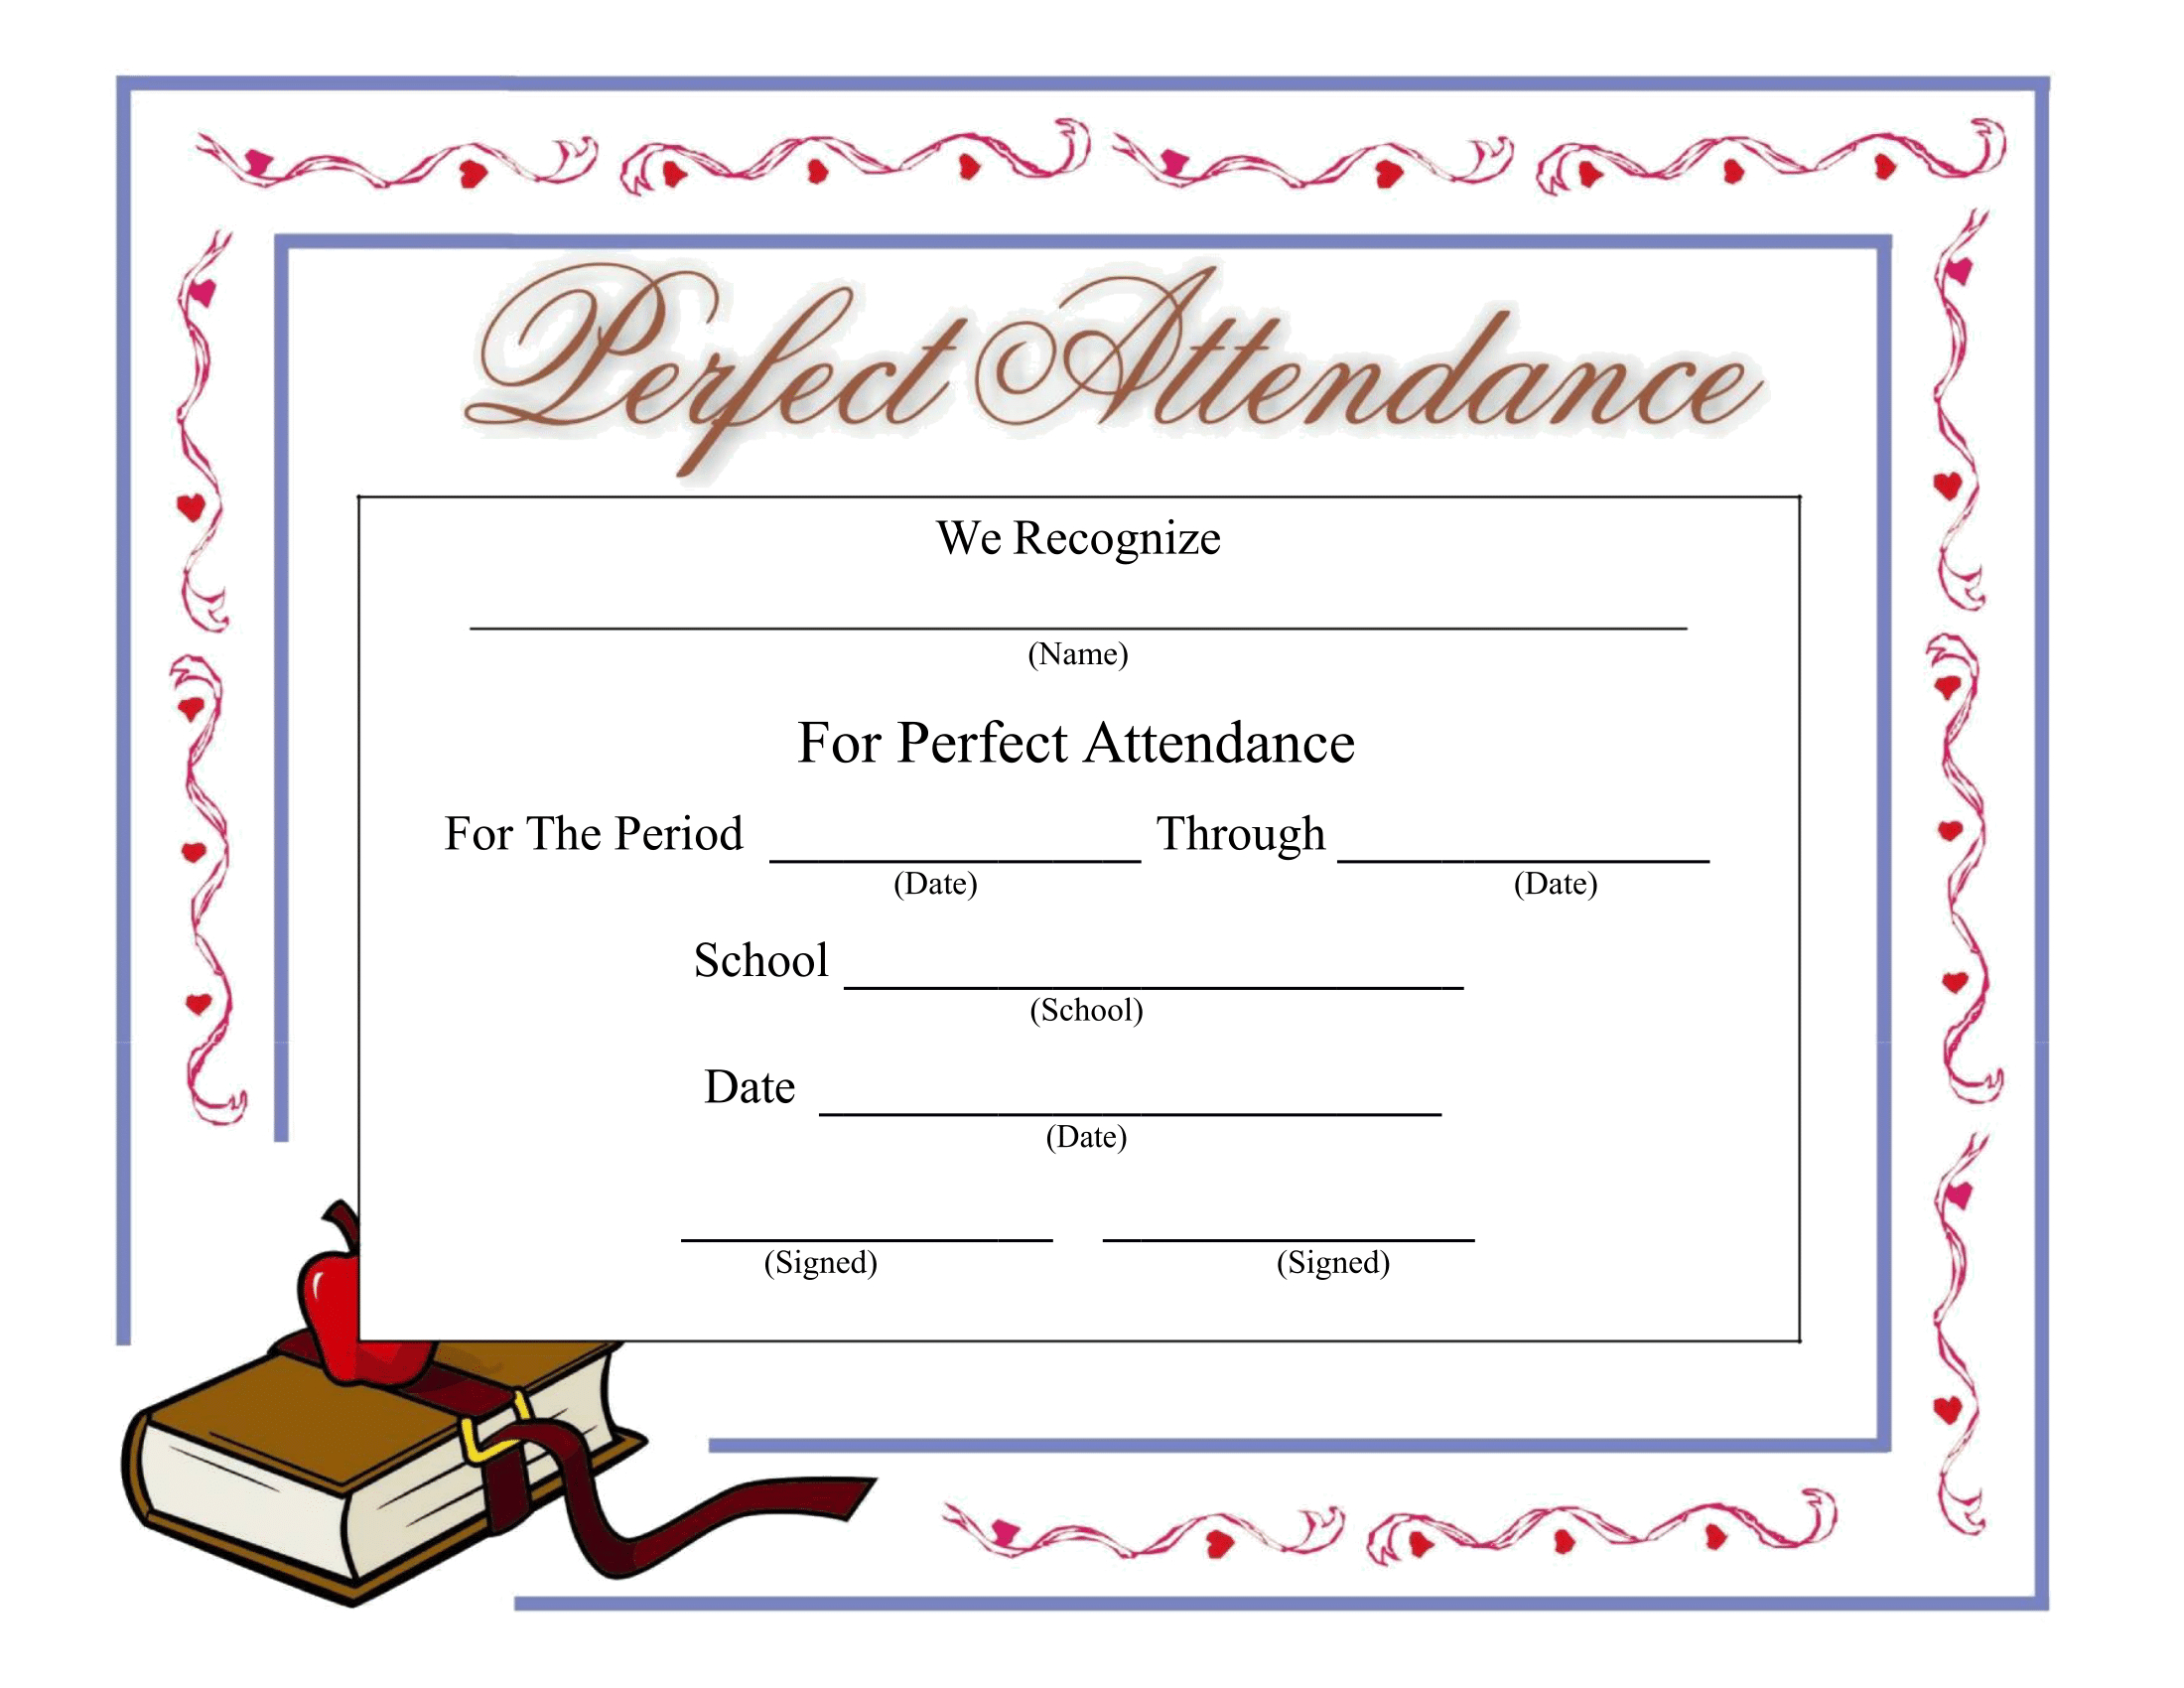 Perfect Attendance Certificate - Download A Free Template For Perfect Attendance Certificate Free Template